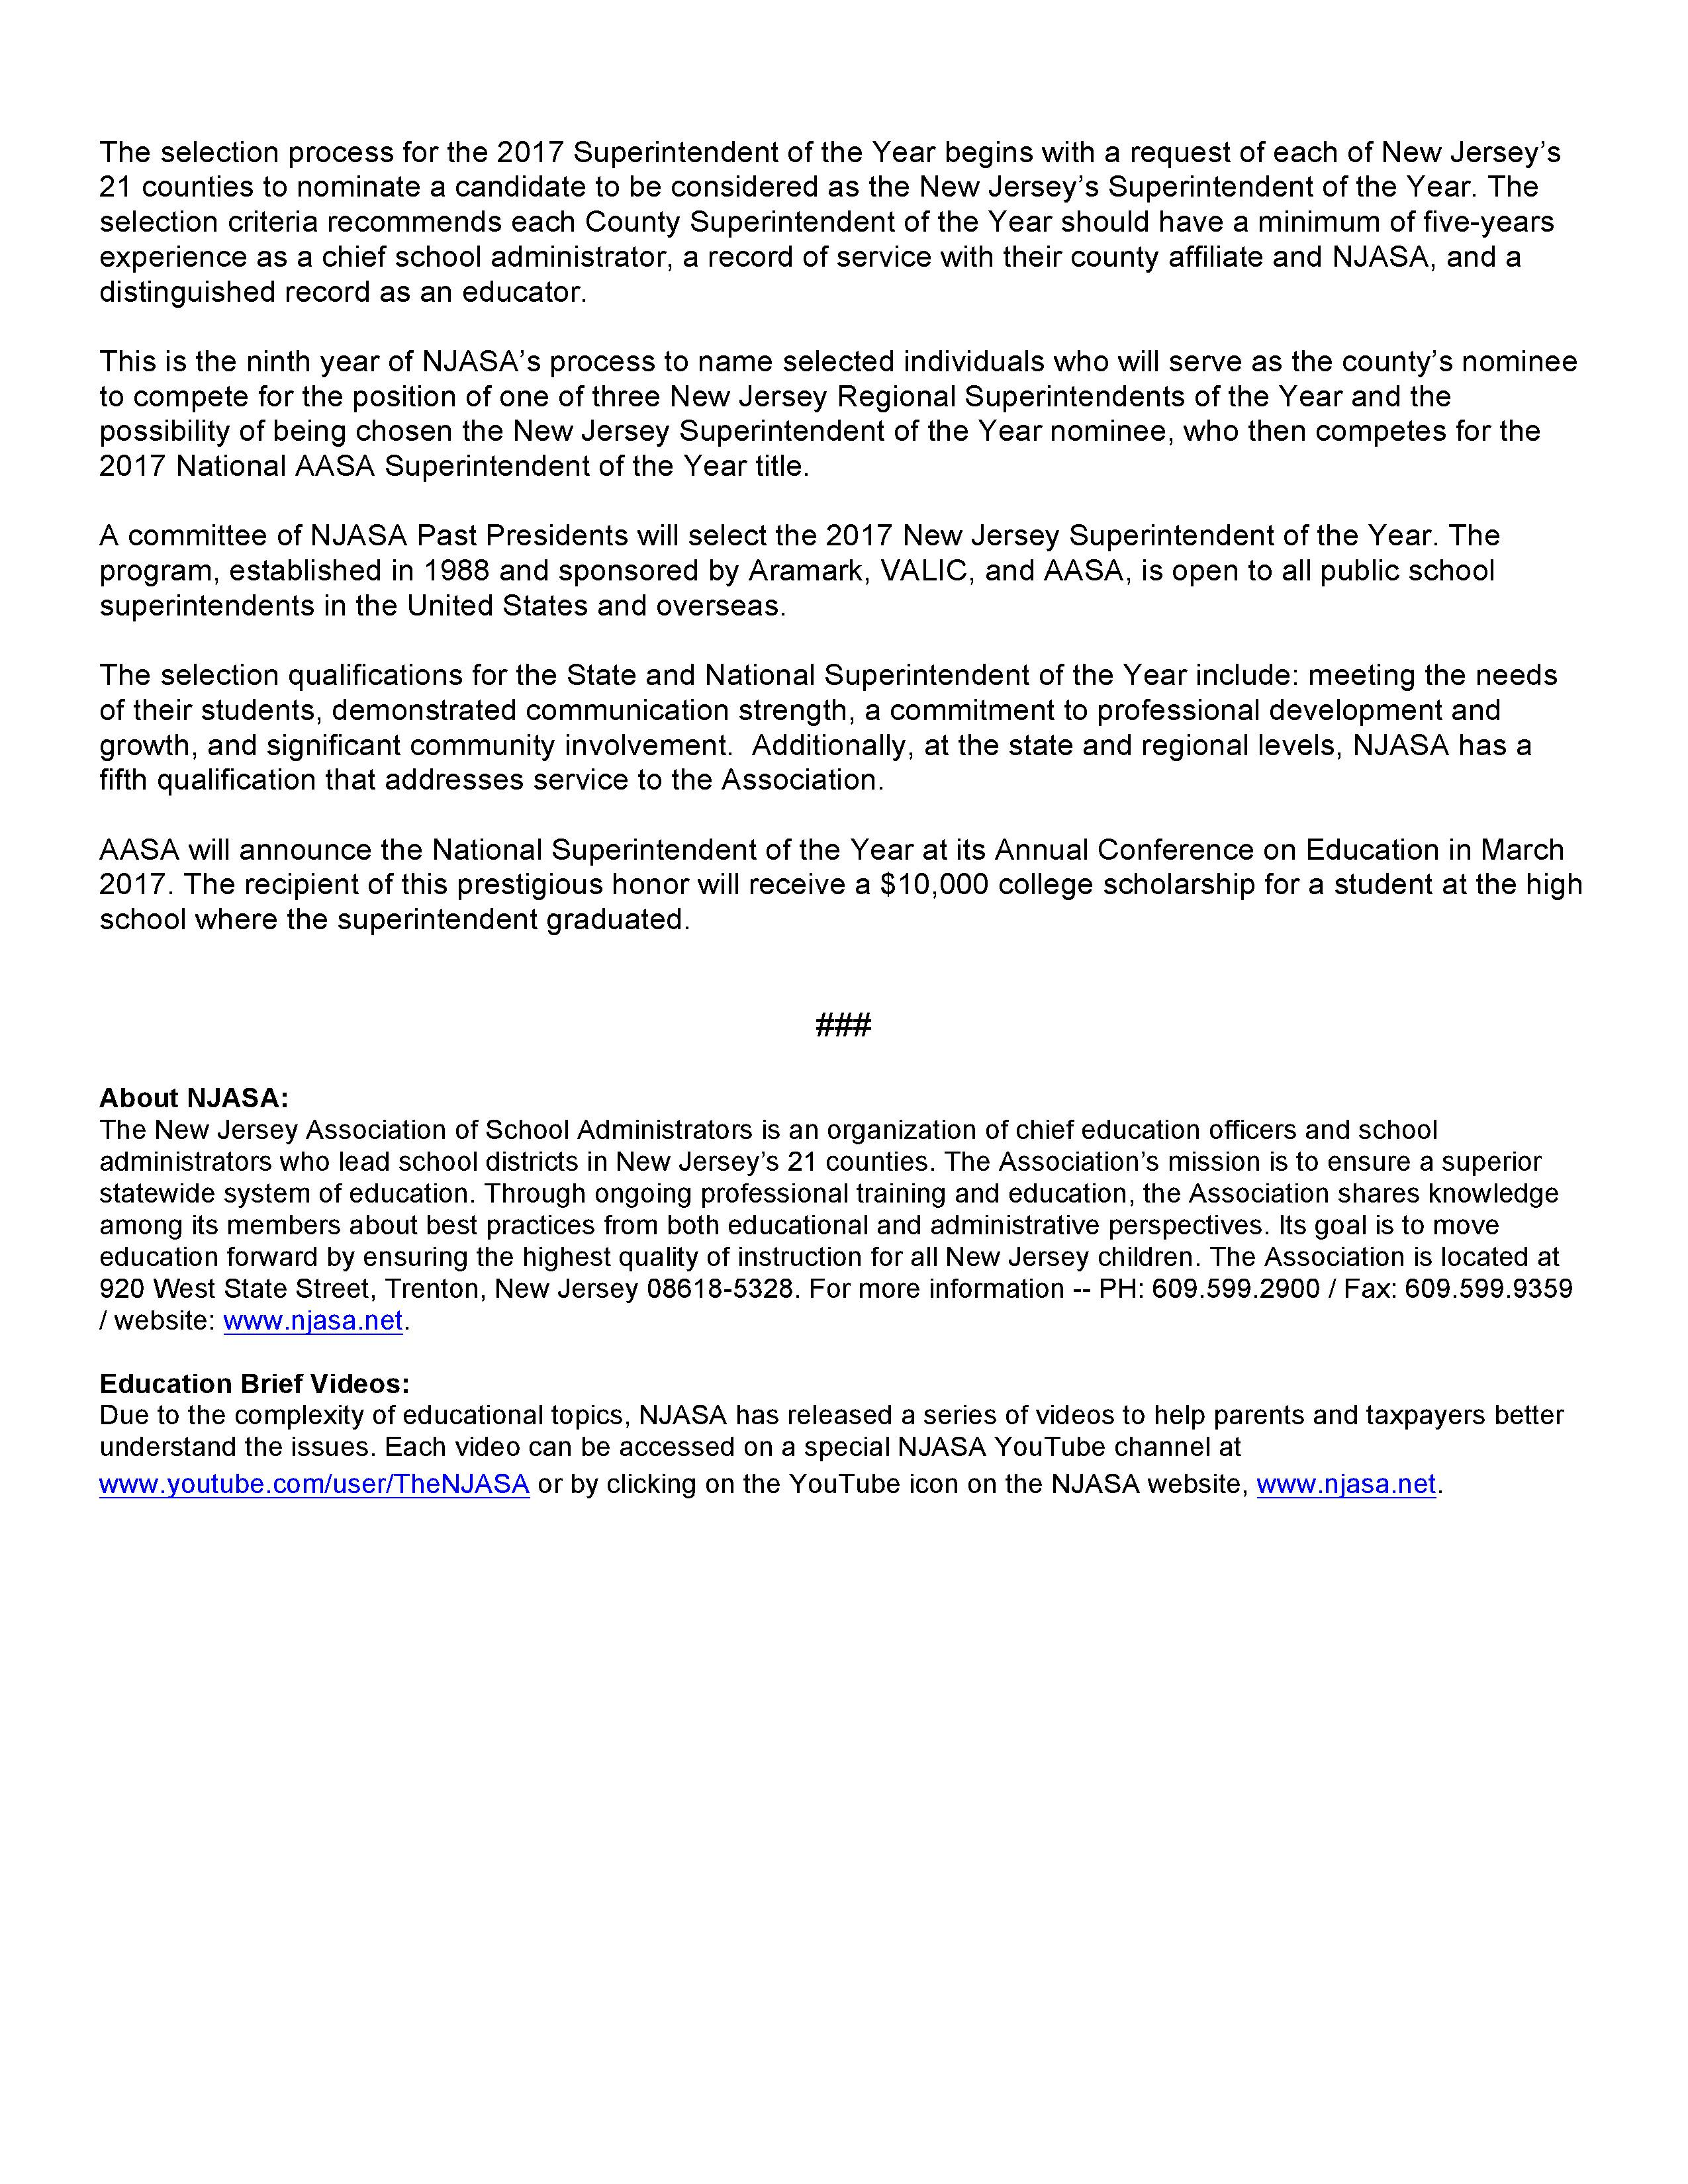 NJASA Press Release Page 2